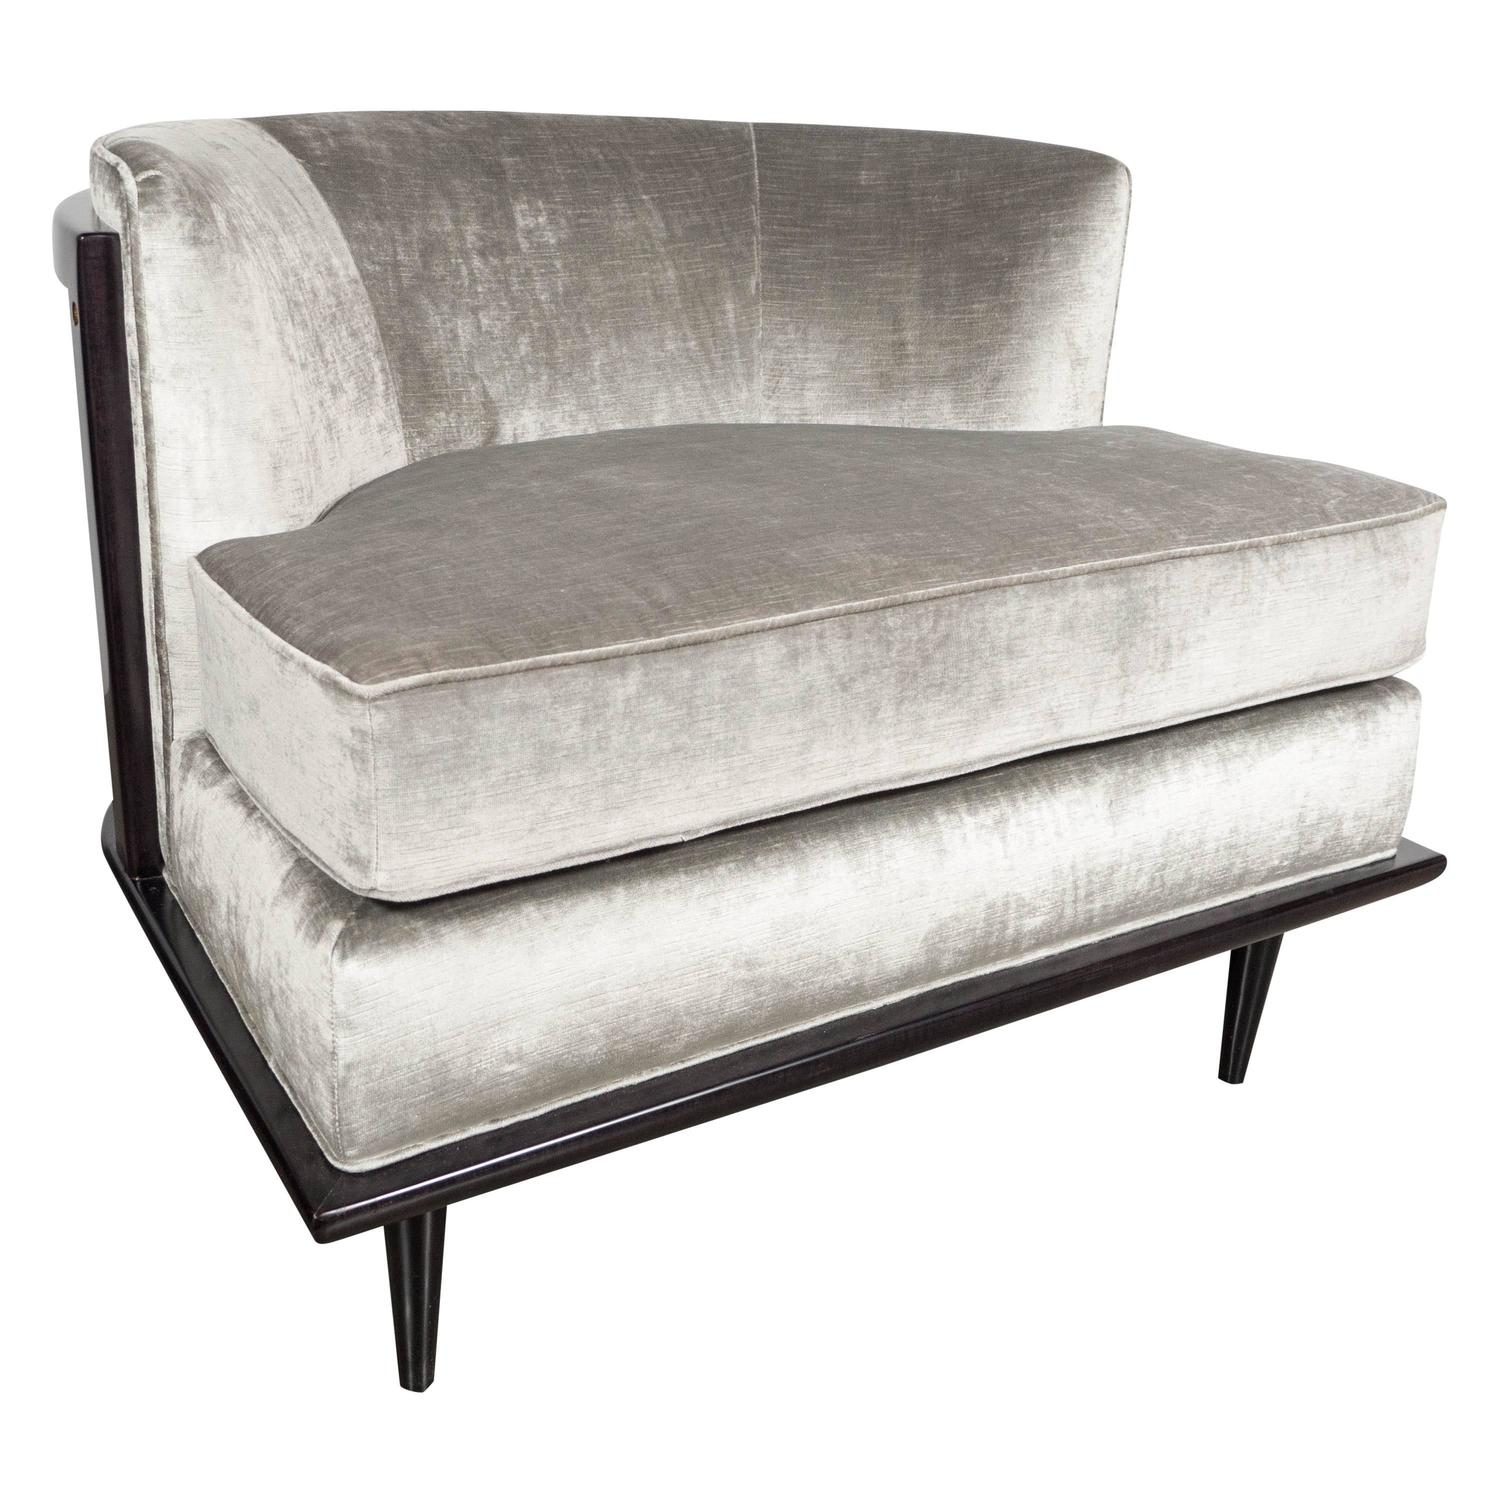 Ultra Chic Mid Century Curved Back Slipper Chair In Smoked Platinum Velvet  At 1stdibs